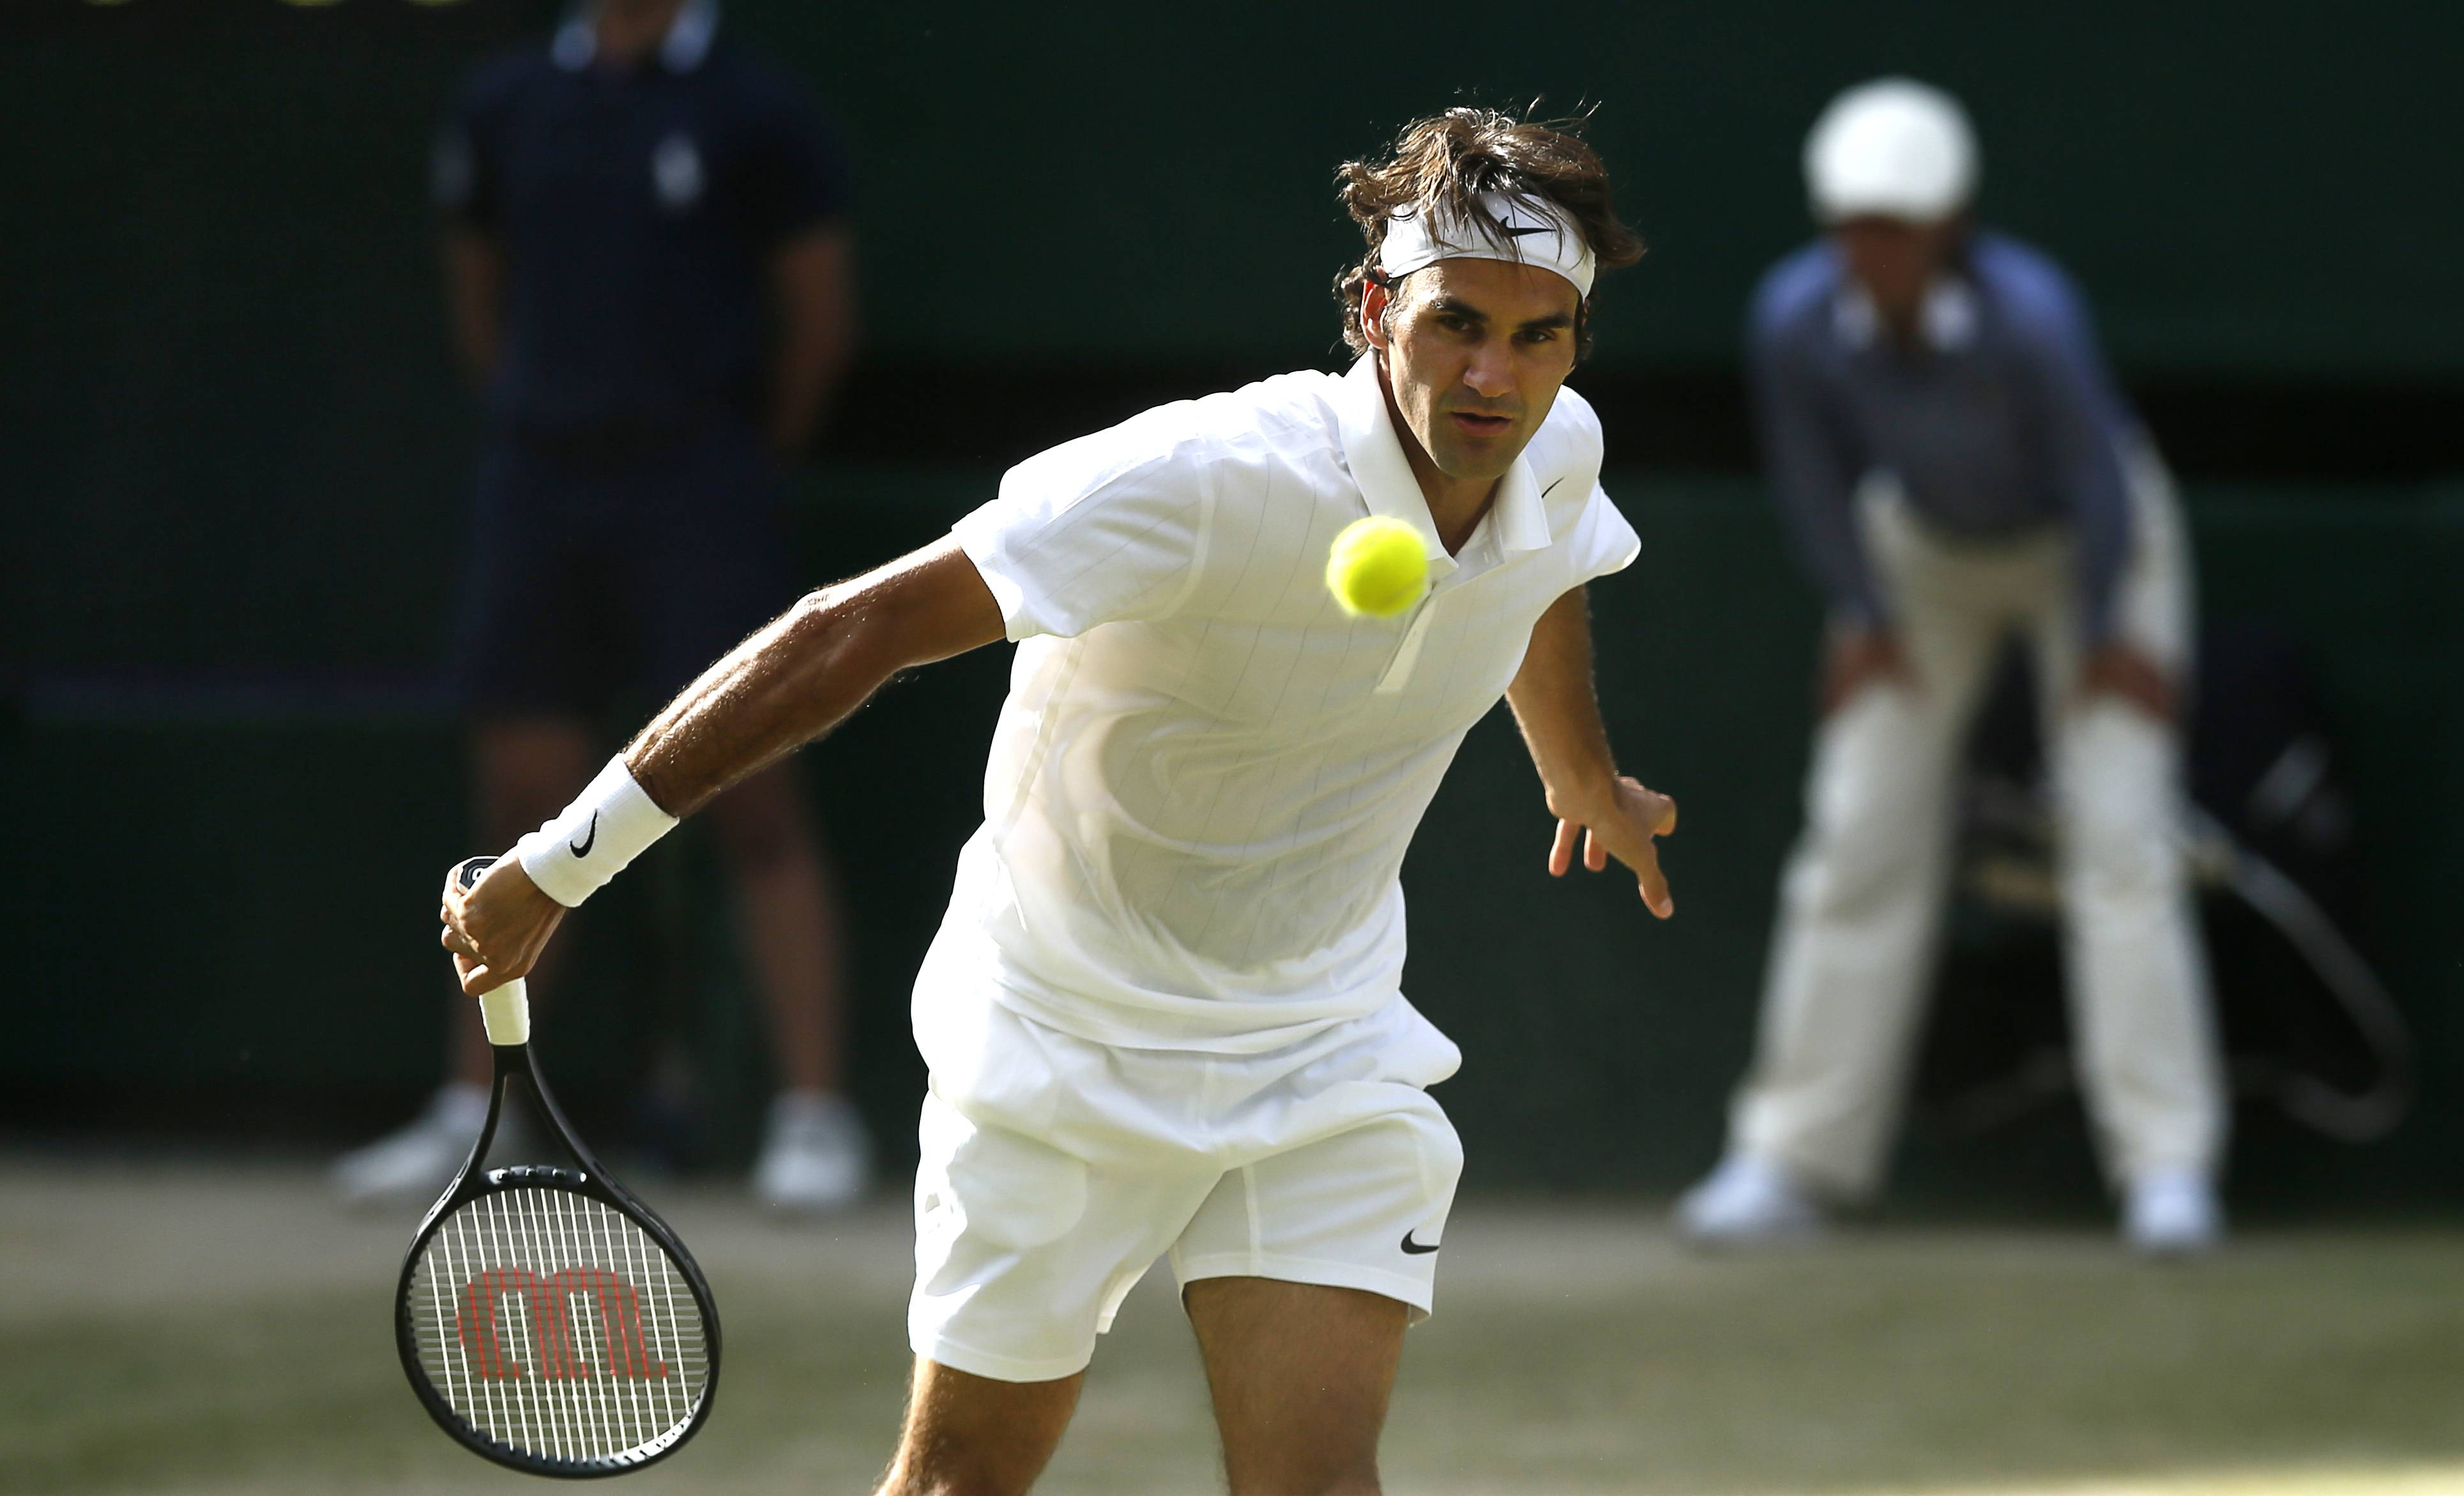 Roger Federer watches his return to Milos Raonic during their men's semifinal match Friday at Wimbledon.